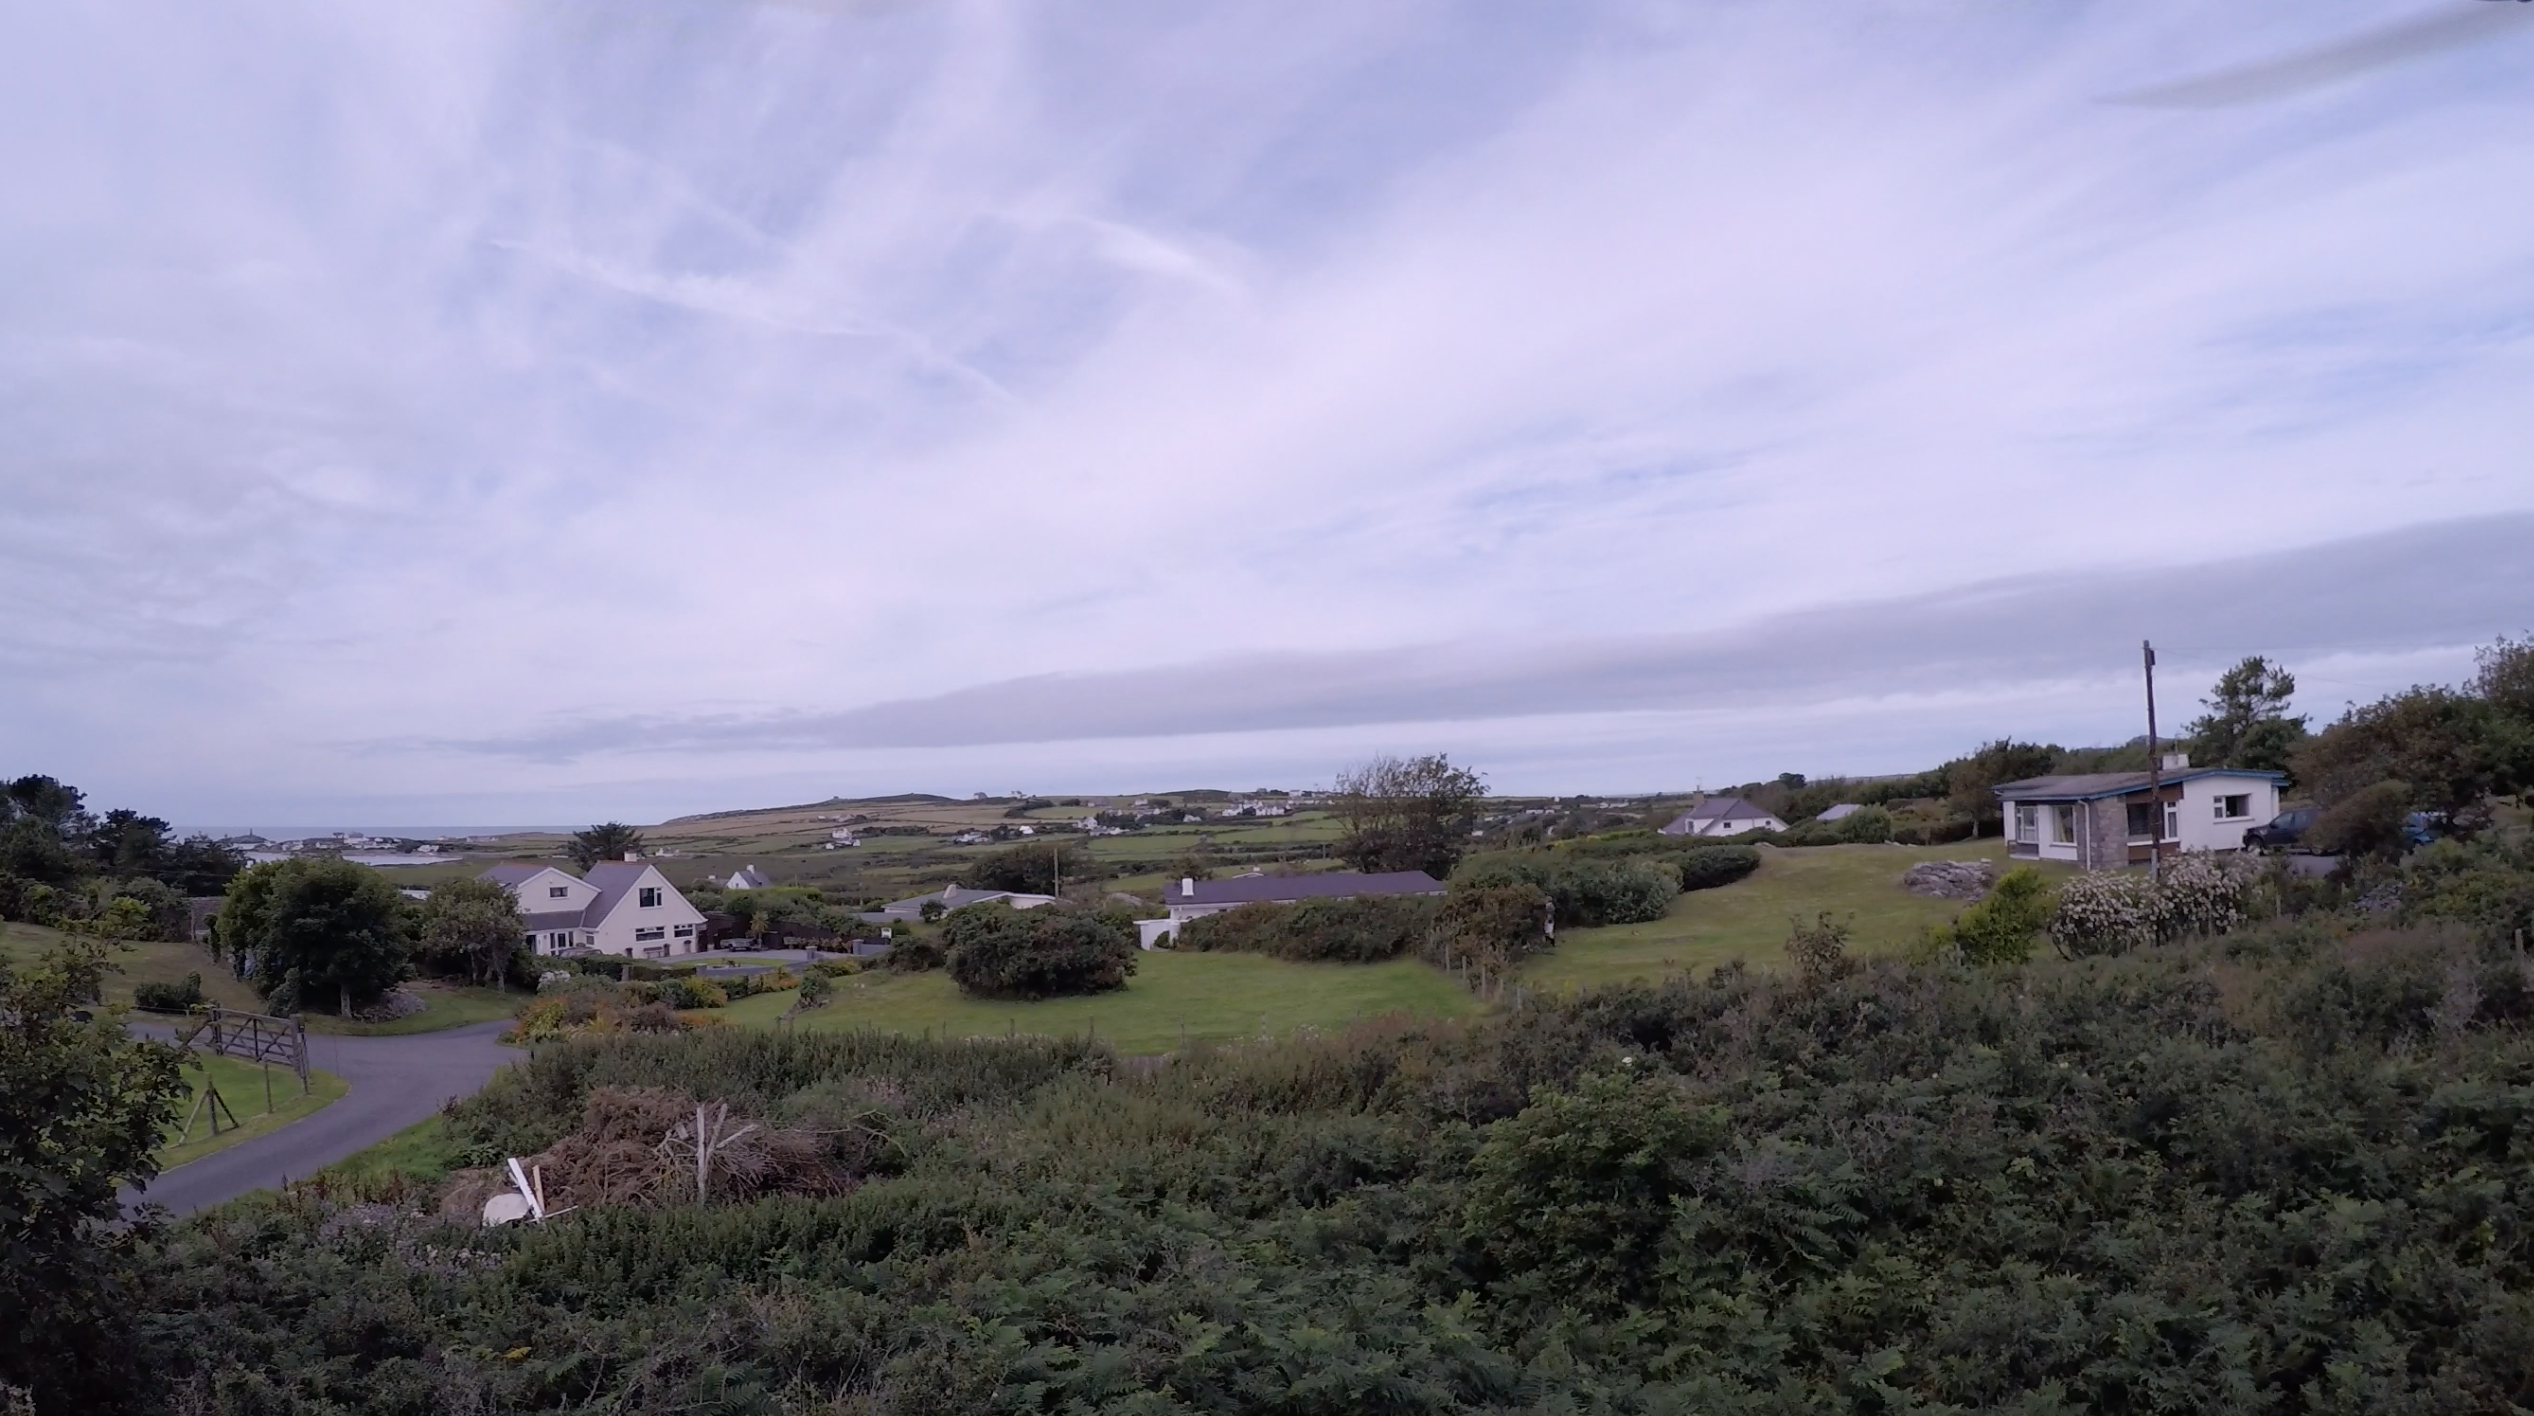 Rhoscolyn aerial photo